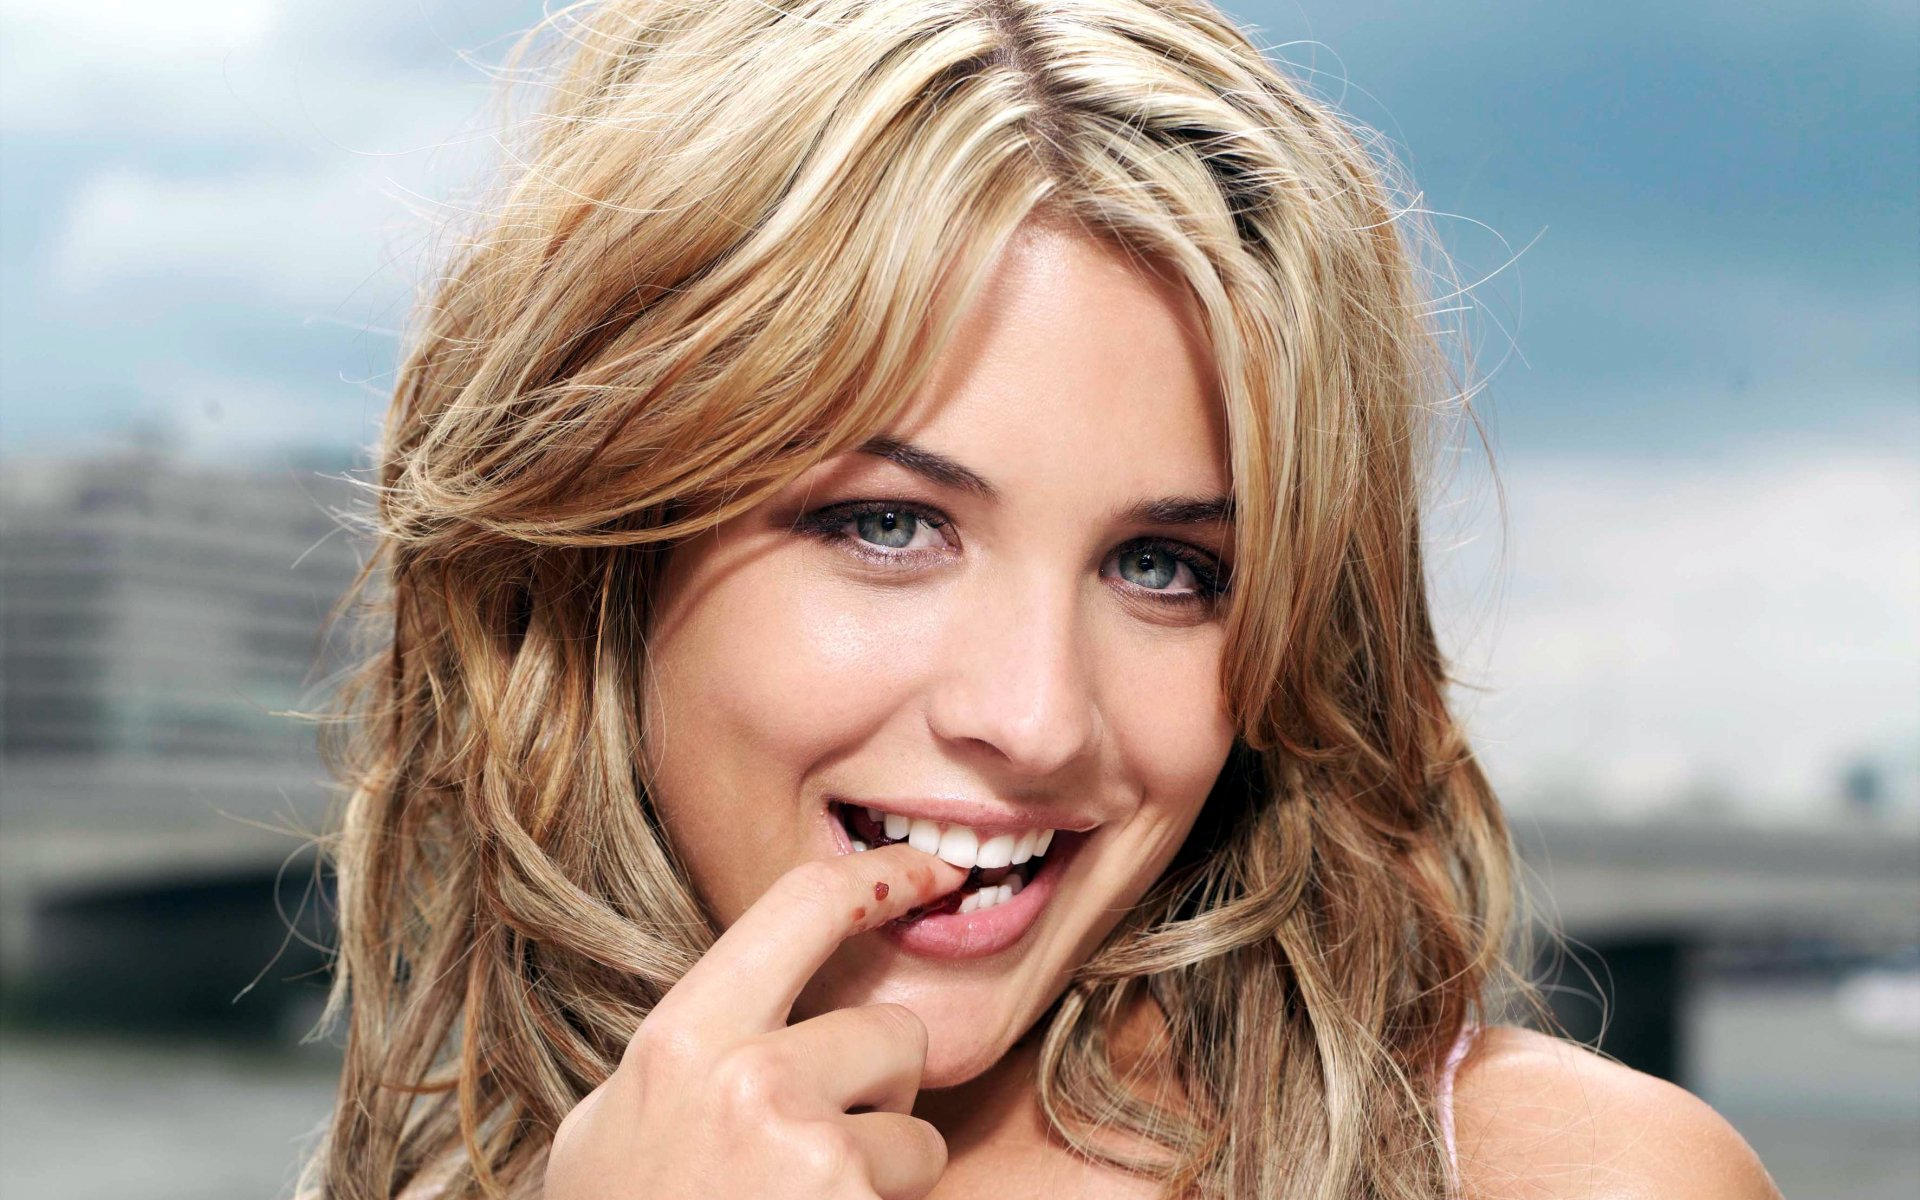 https://w-dog.ru/wallpapers/4/10/516557129199122/gemma-atkinson-lico-devushka-blondinka.jpg